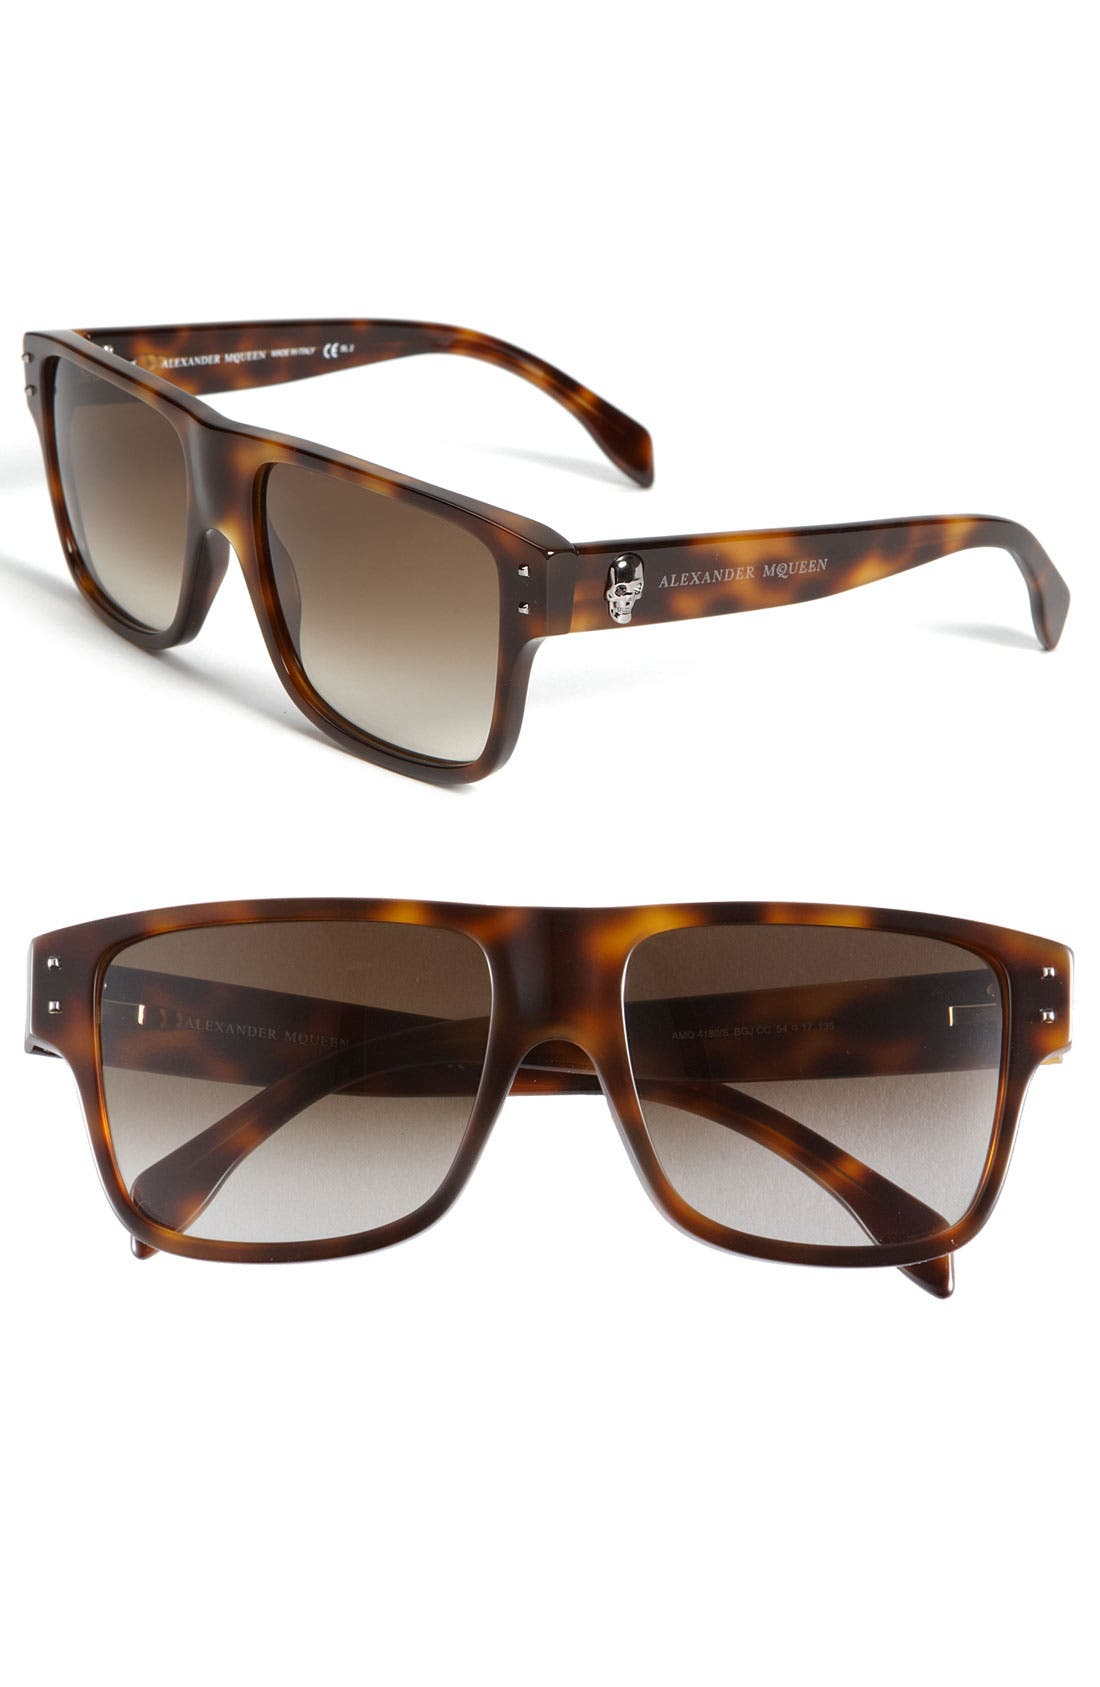 Main Image - Alexander McQueen Retro Inspired Sunglasses